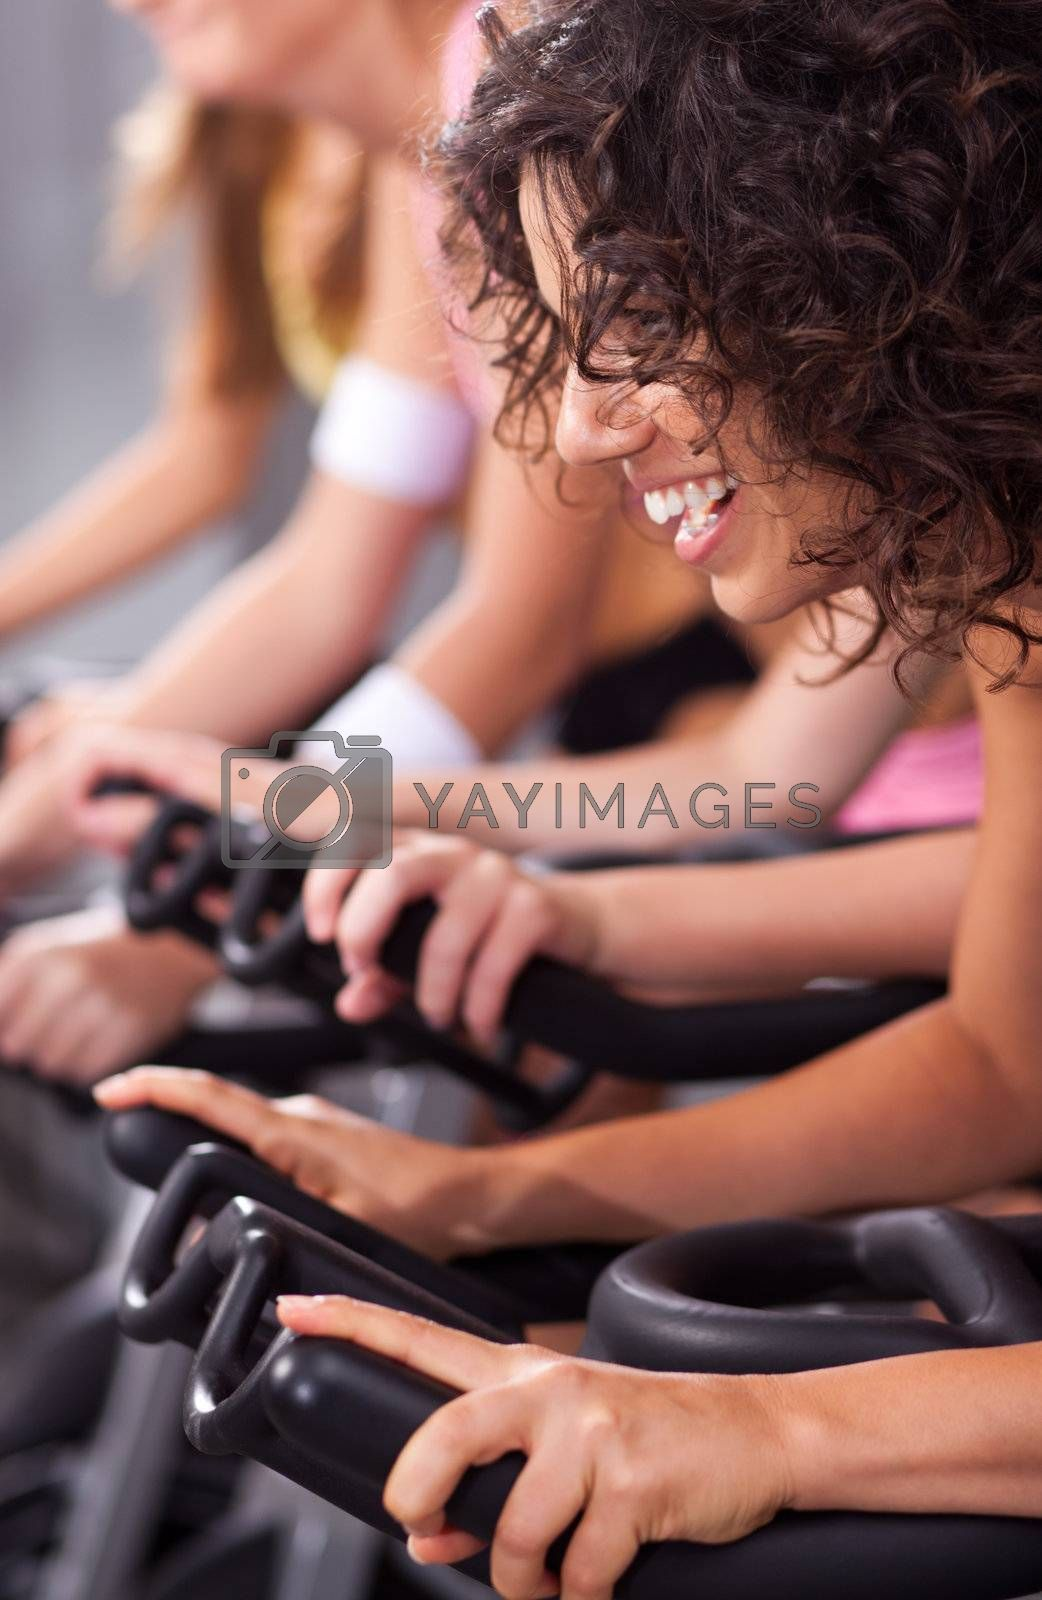 Four people on bicycles in a gym or fitness club for a workout.